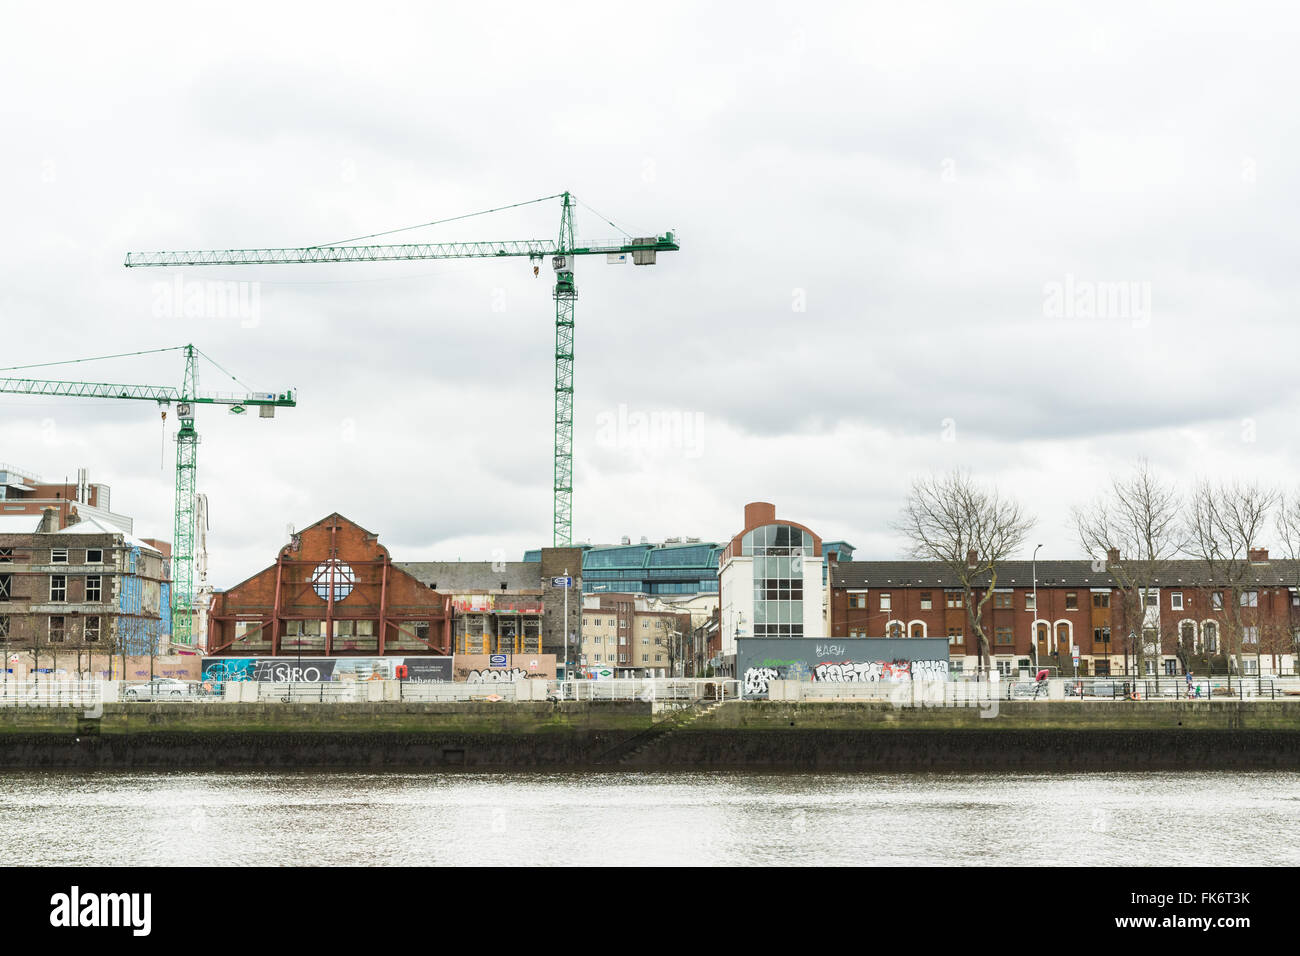 Saved Dublin Tramway facade surrounded by development works, Sir John Rogerson's Quay, SOBO District, Dublin, - Stock Image